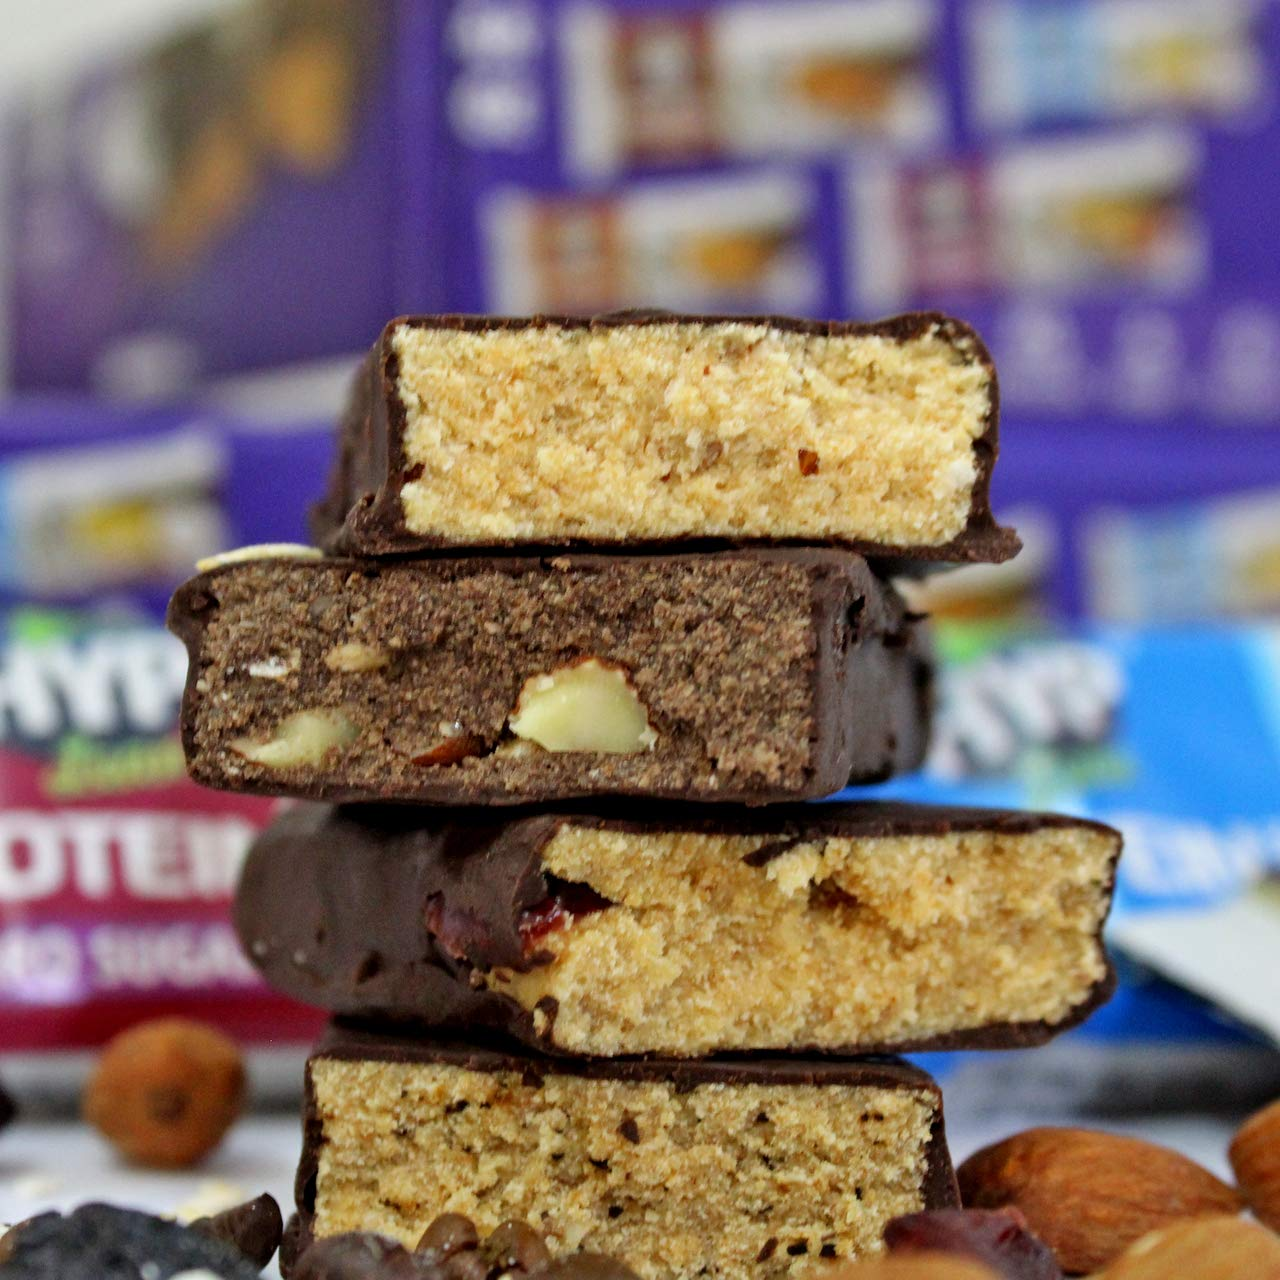 HYP-Sugarfree-Protein-Bars-10g-protein-Oats-Brownie-EspressoBerry-Burst-Coconut-Almond-Pack-of-8-40g-x-82